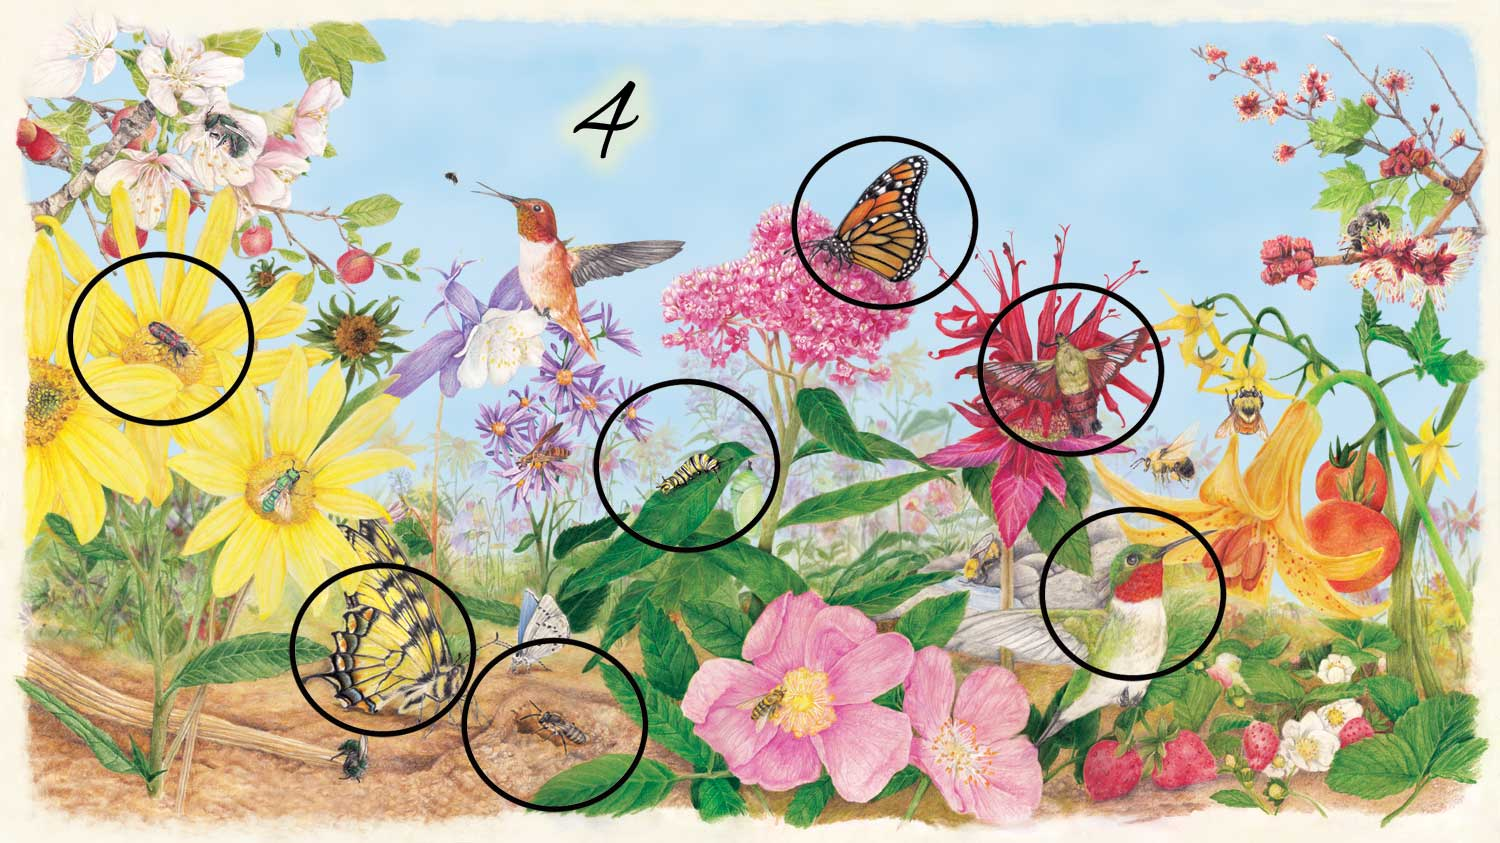 Pollinator poster with pollinators circled